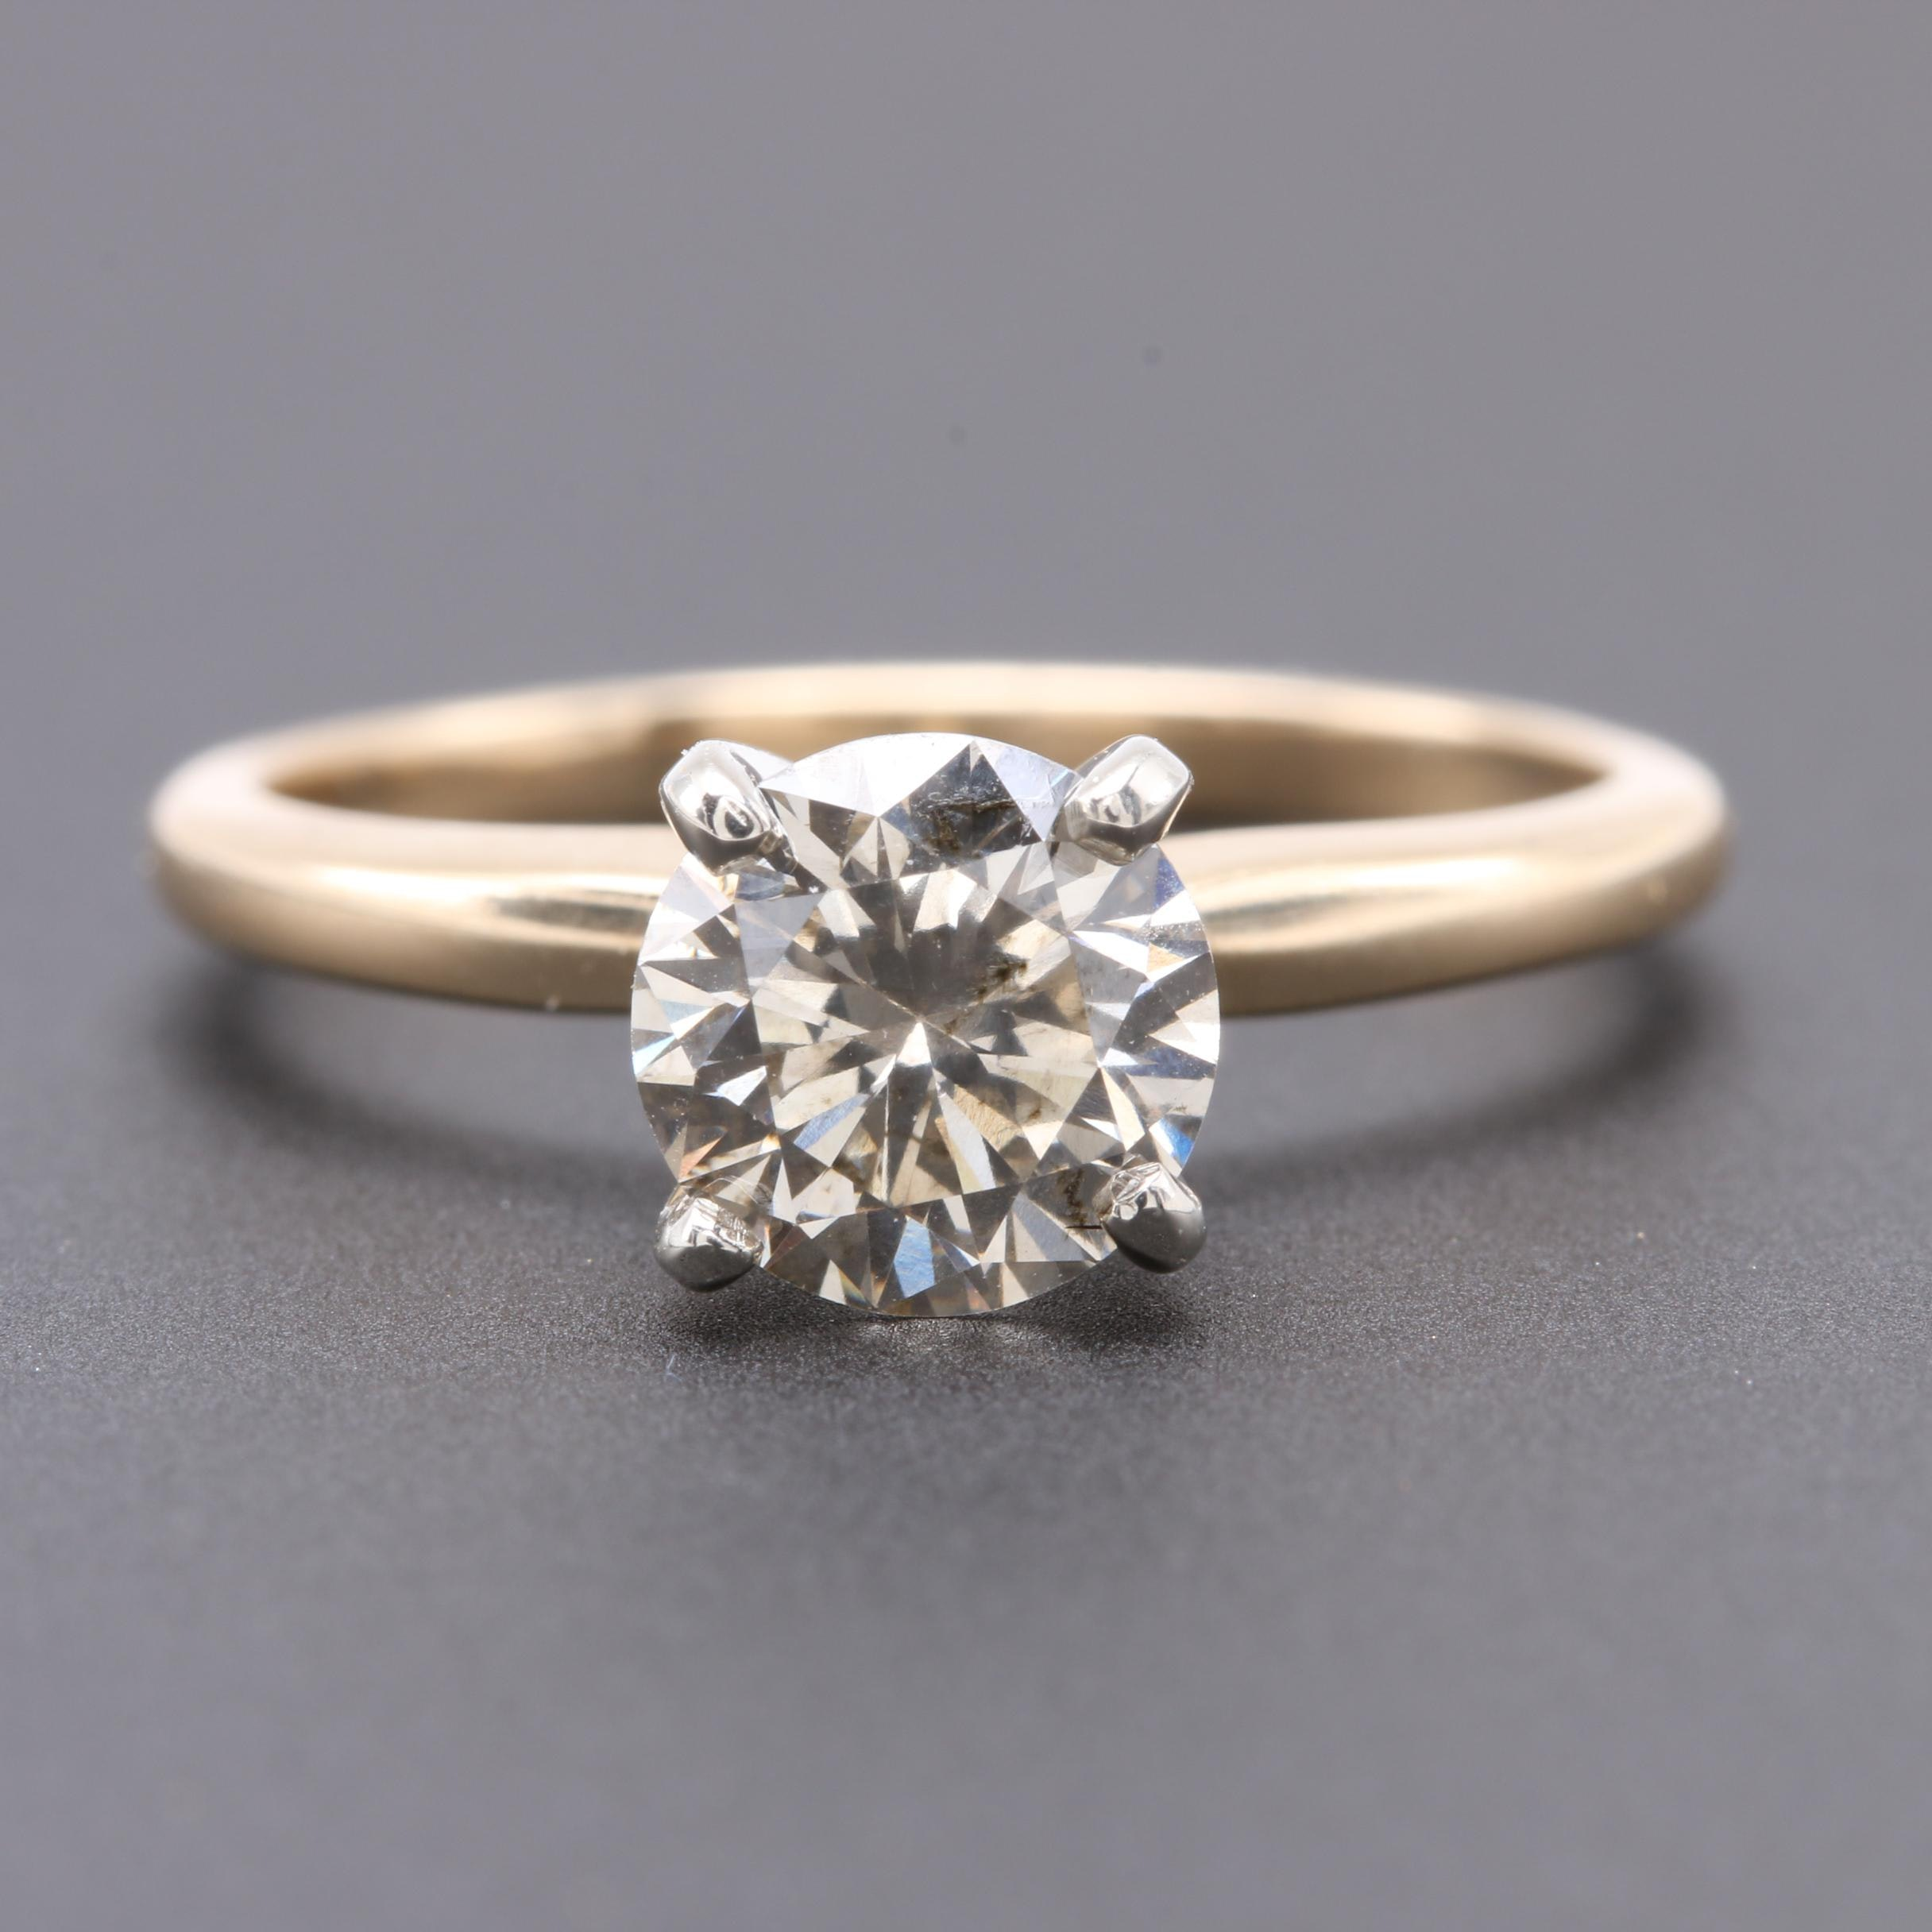 14K Yellow Gold 1.08 CT Diamond Solitaire Ring